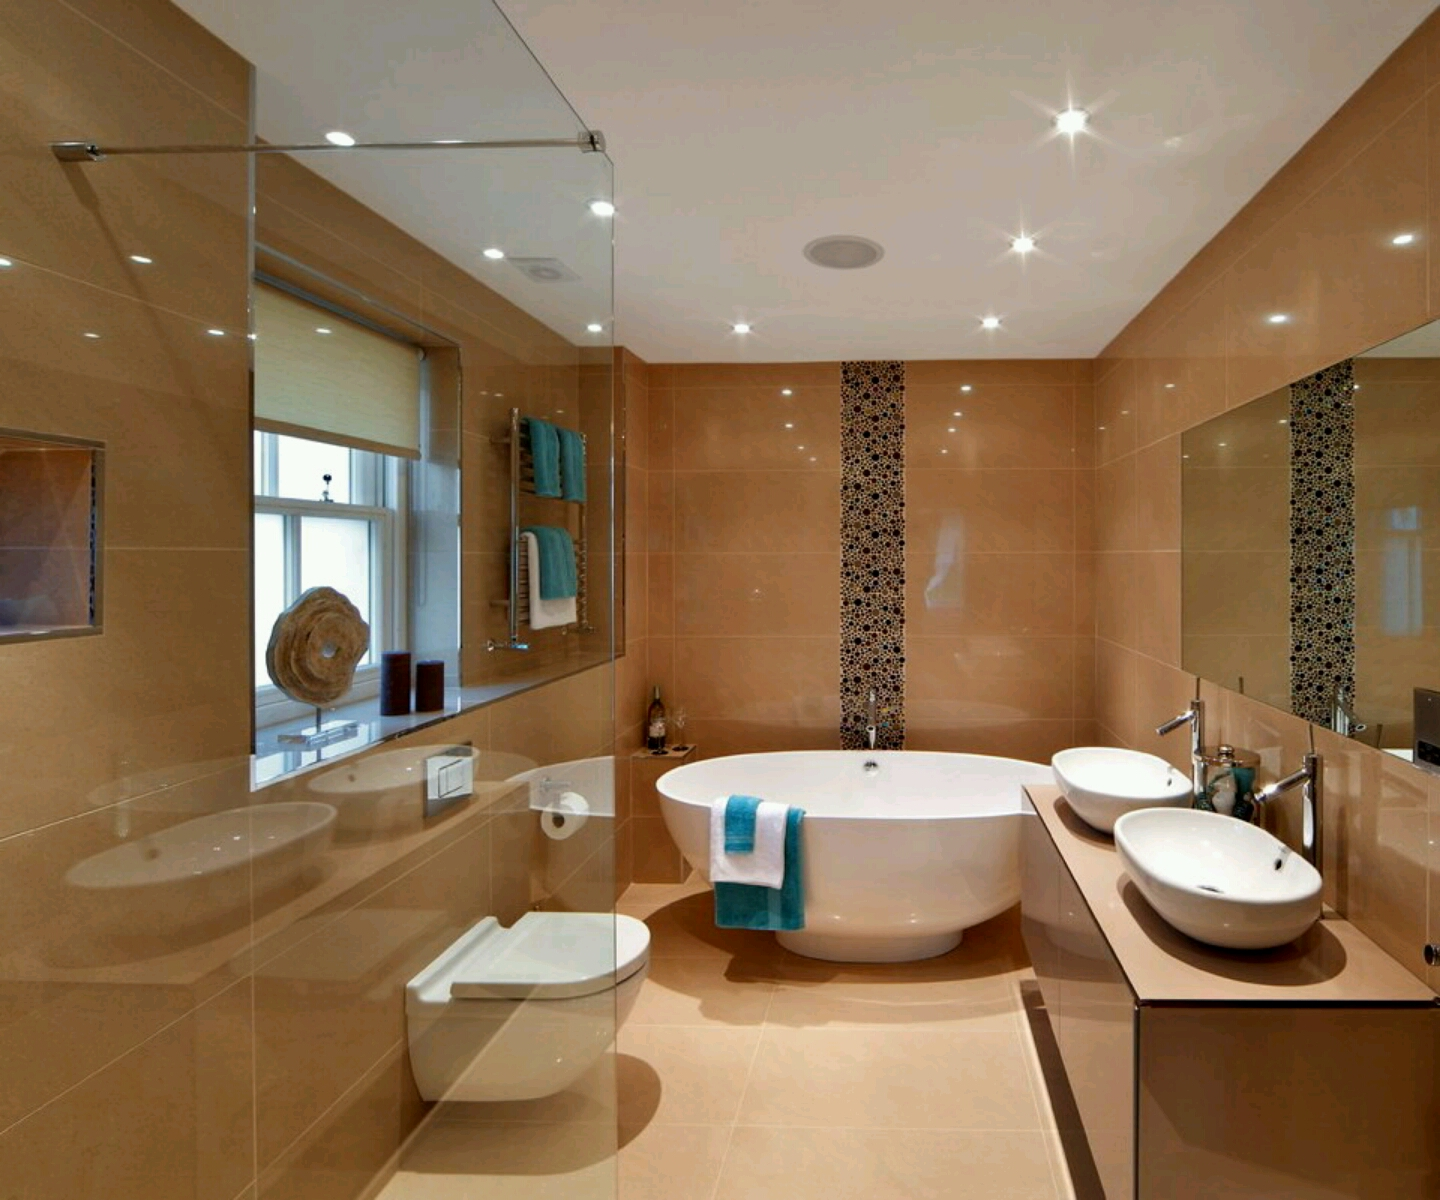 Bathroom 22 Bathroom Design Ideas 2015